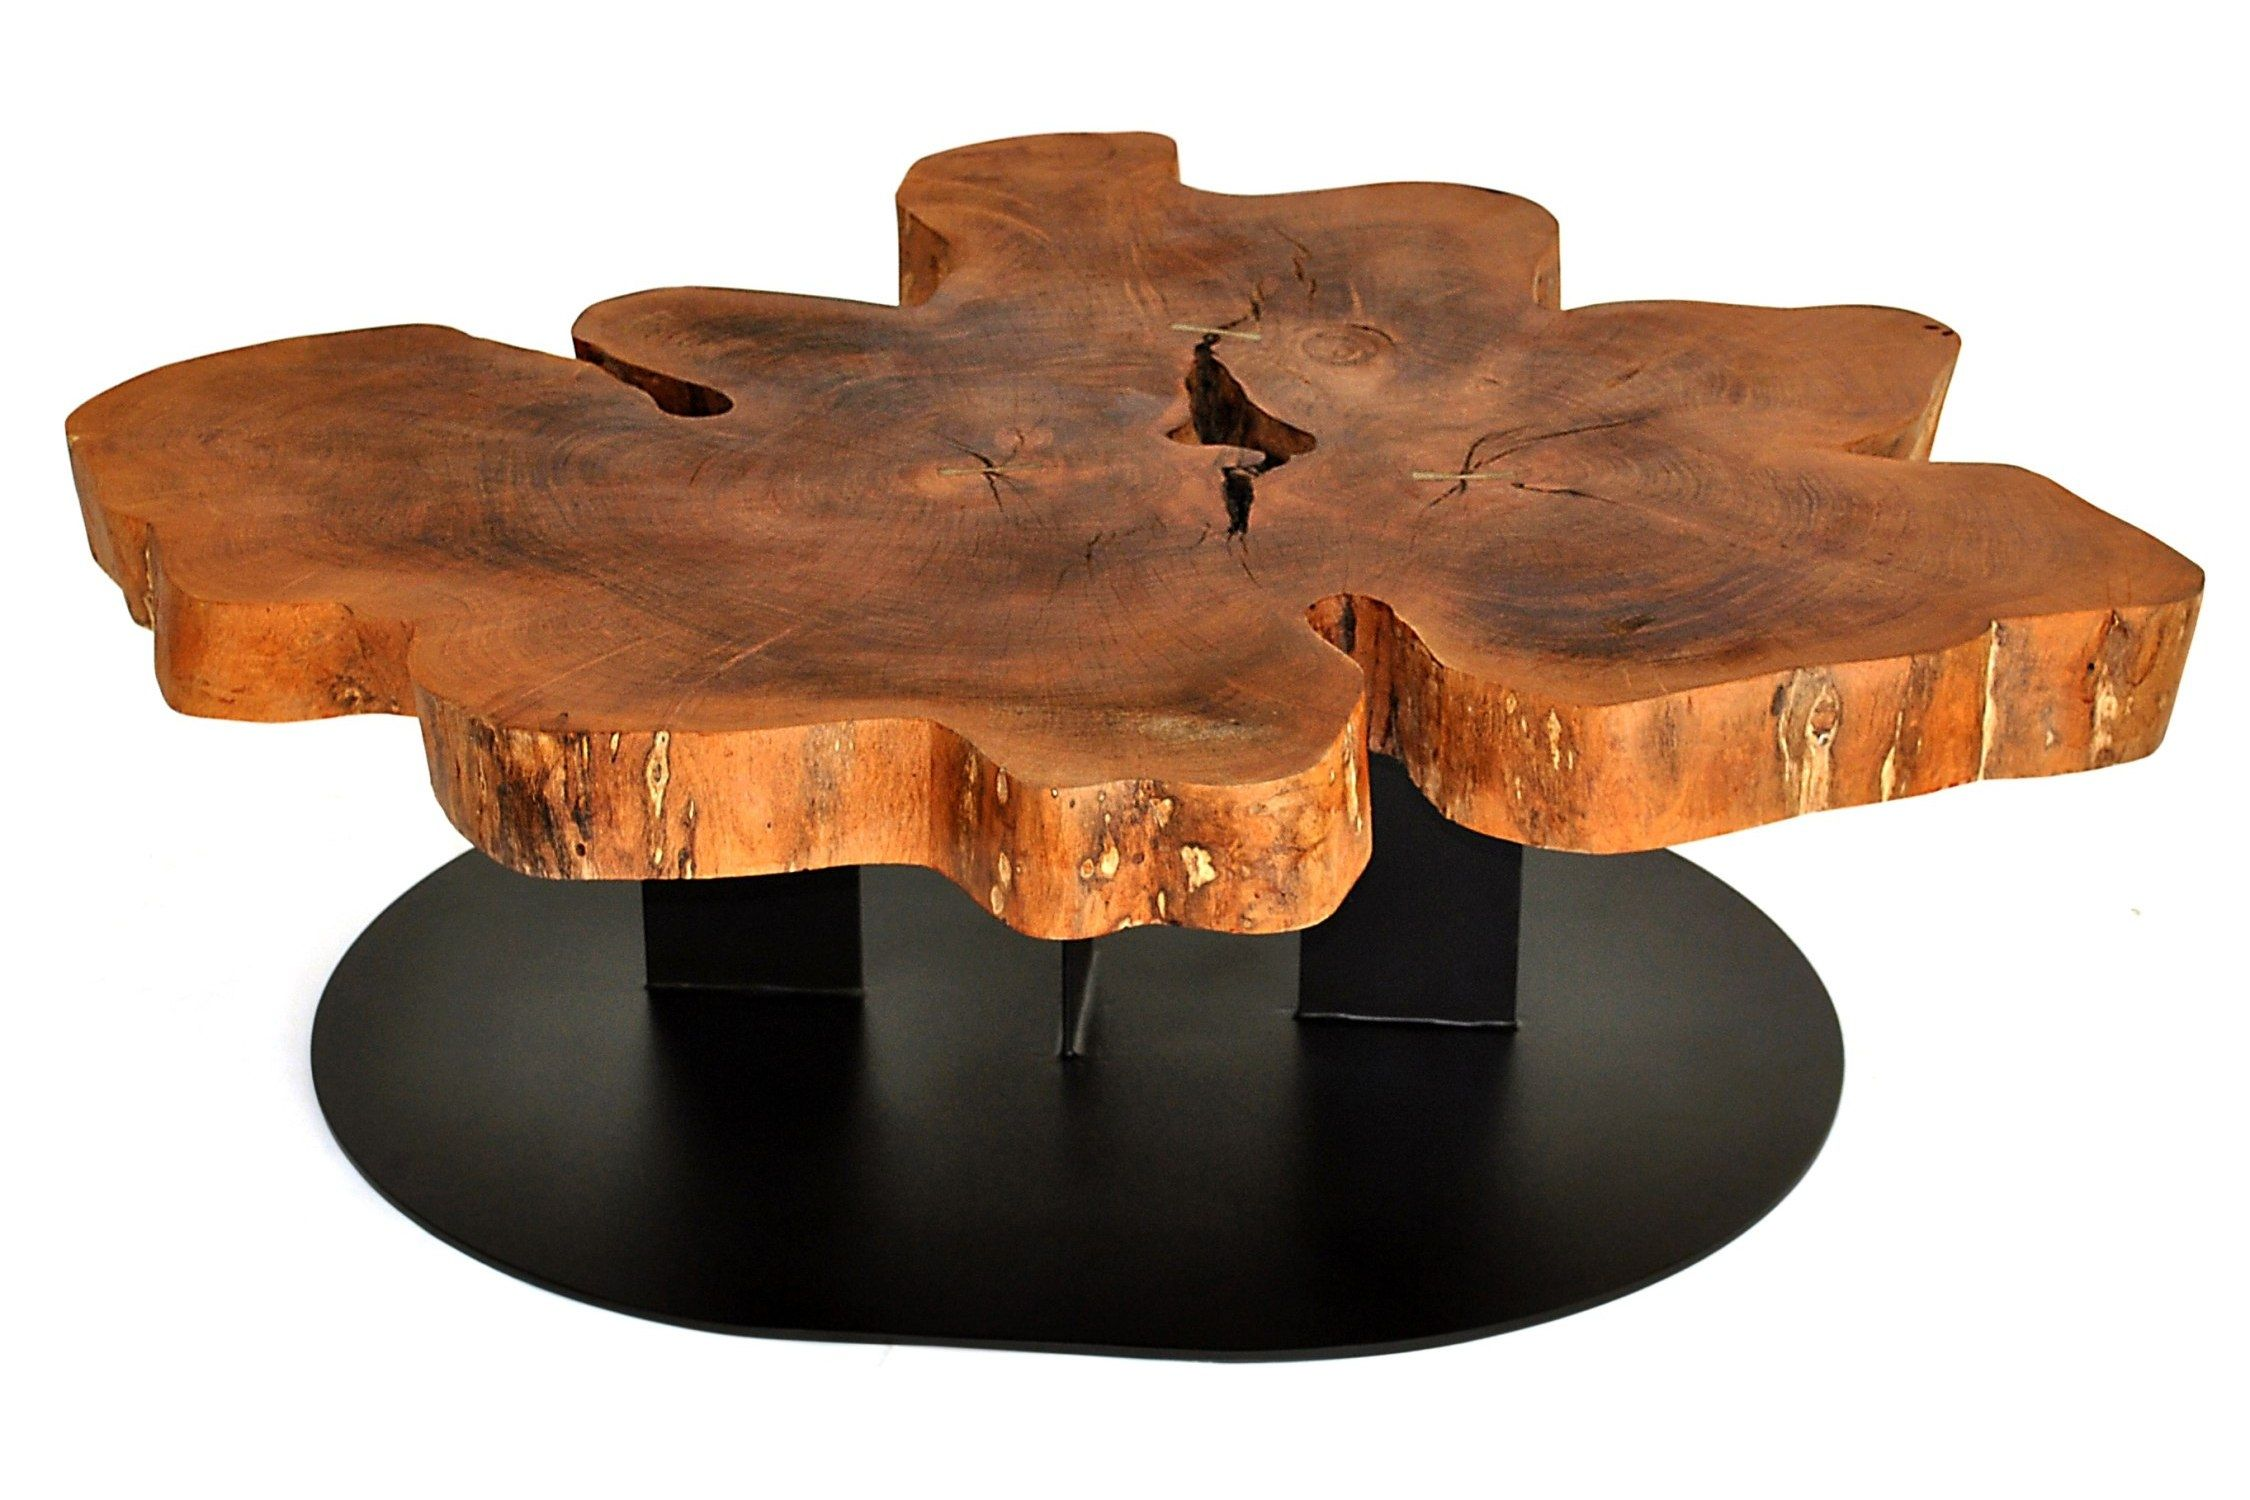 free form wood coffee table  Contemporary coffee table / wooden / in reclaimed material ...